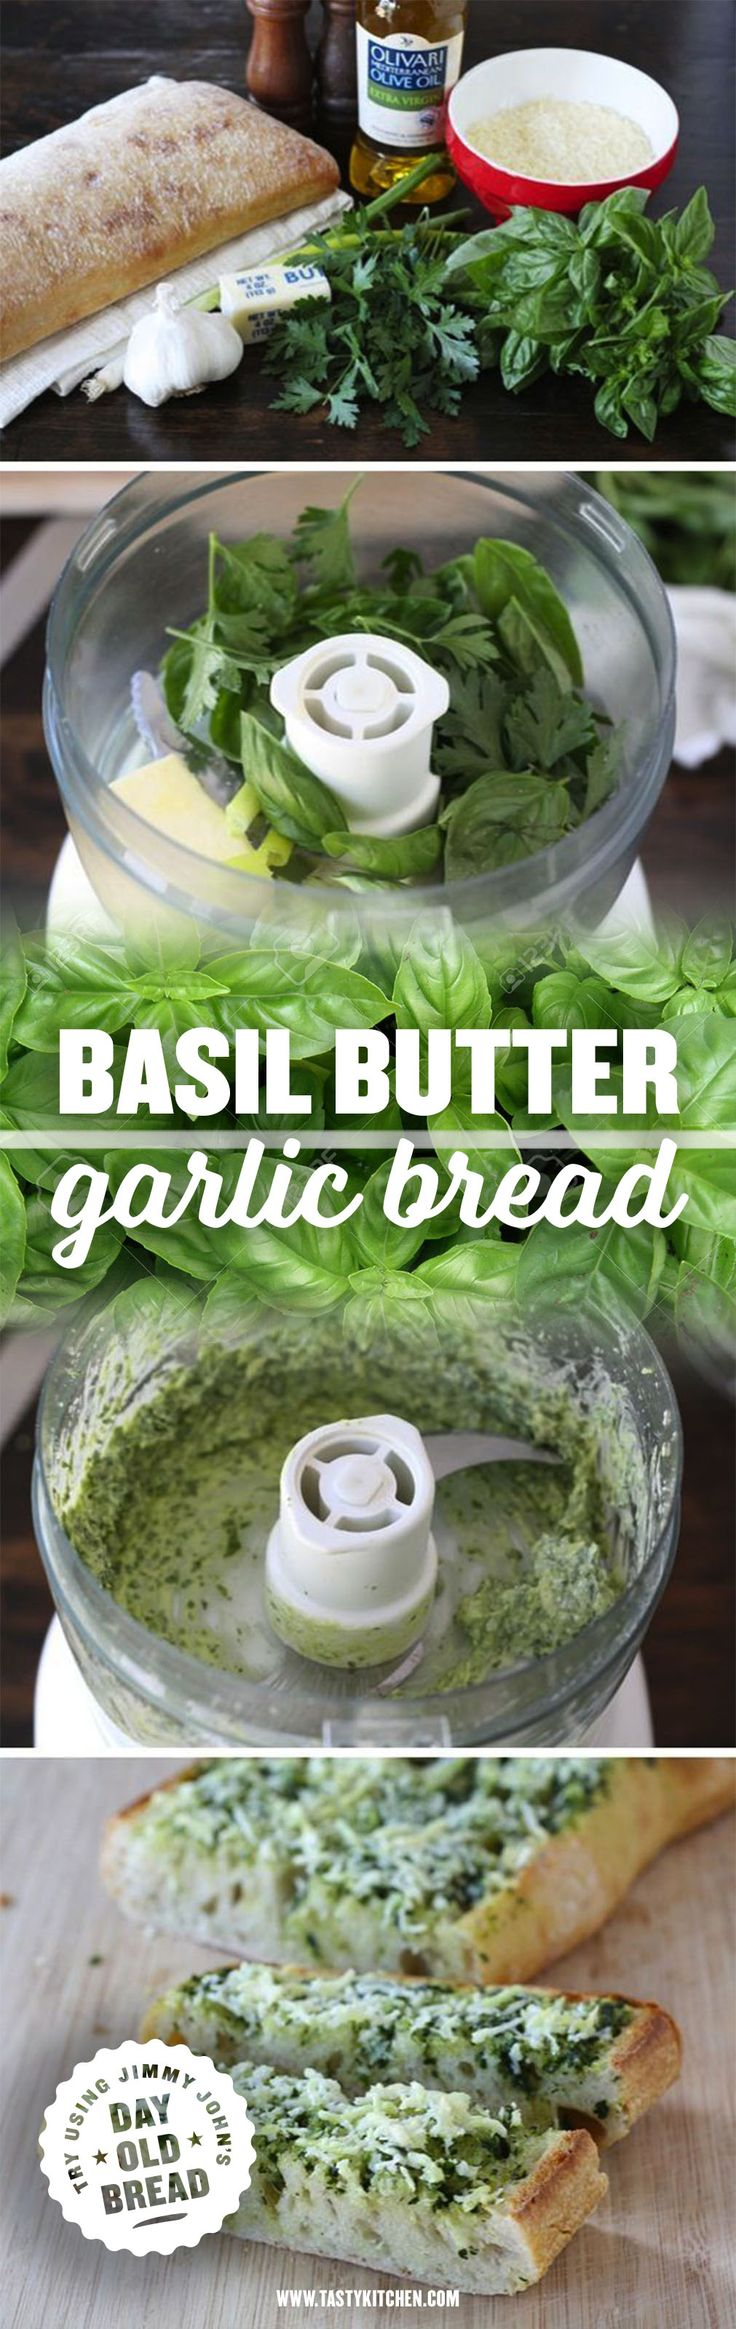 Basil Butter Garlic Bread! Try making with Jimmy John's Day Old French Bread. Sold at all JJ's first come first serve for around 50 cents. Great simple appetizer!